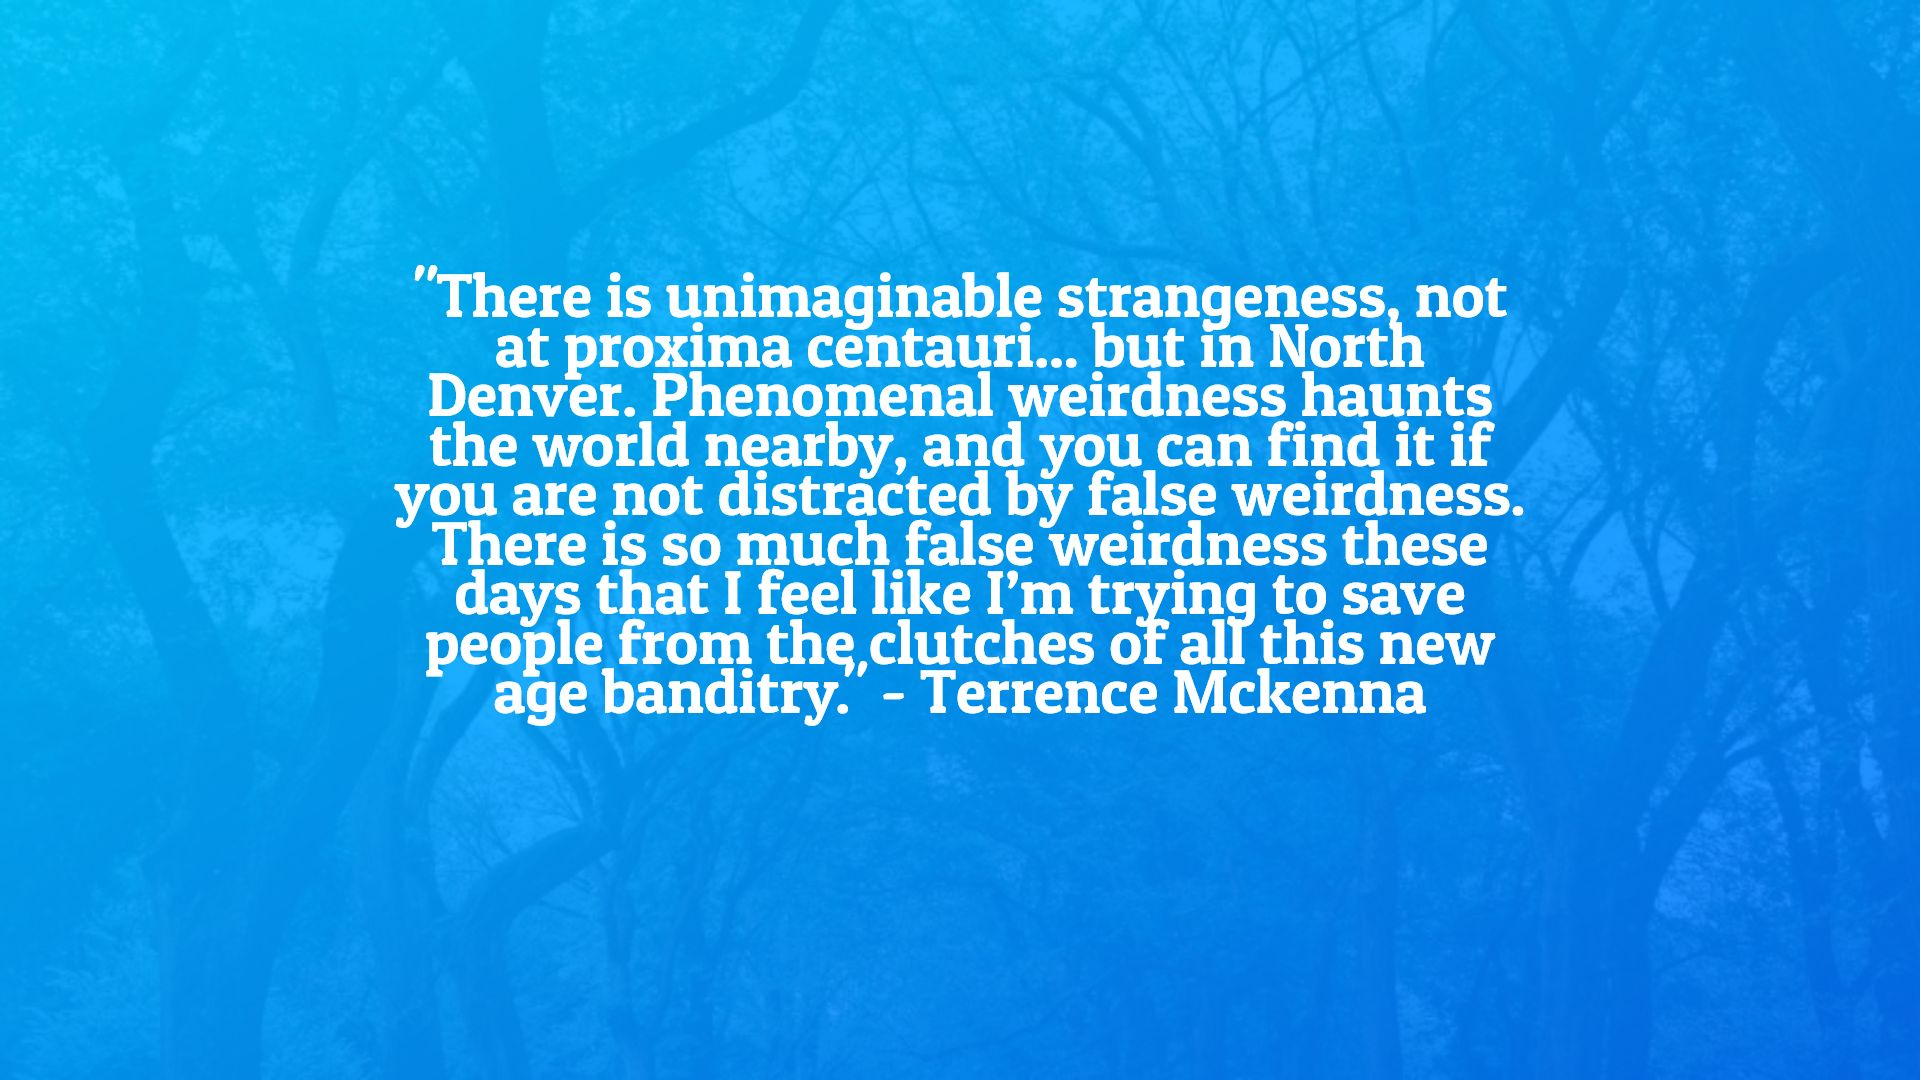 """There is unimaginable strangeness, not at proxima centauri but in North Denver."" – Terrence McKenna [1920×1080]"